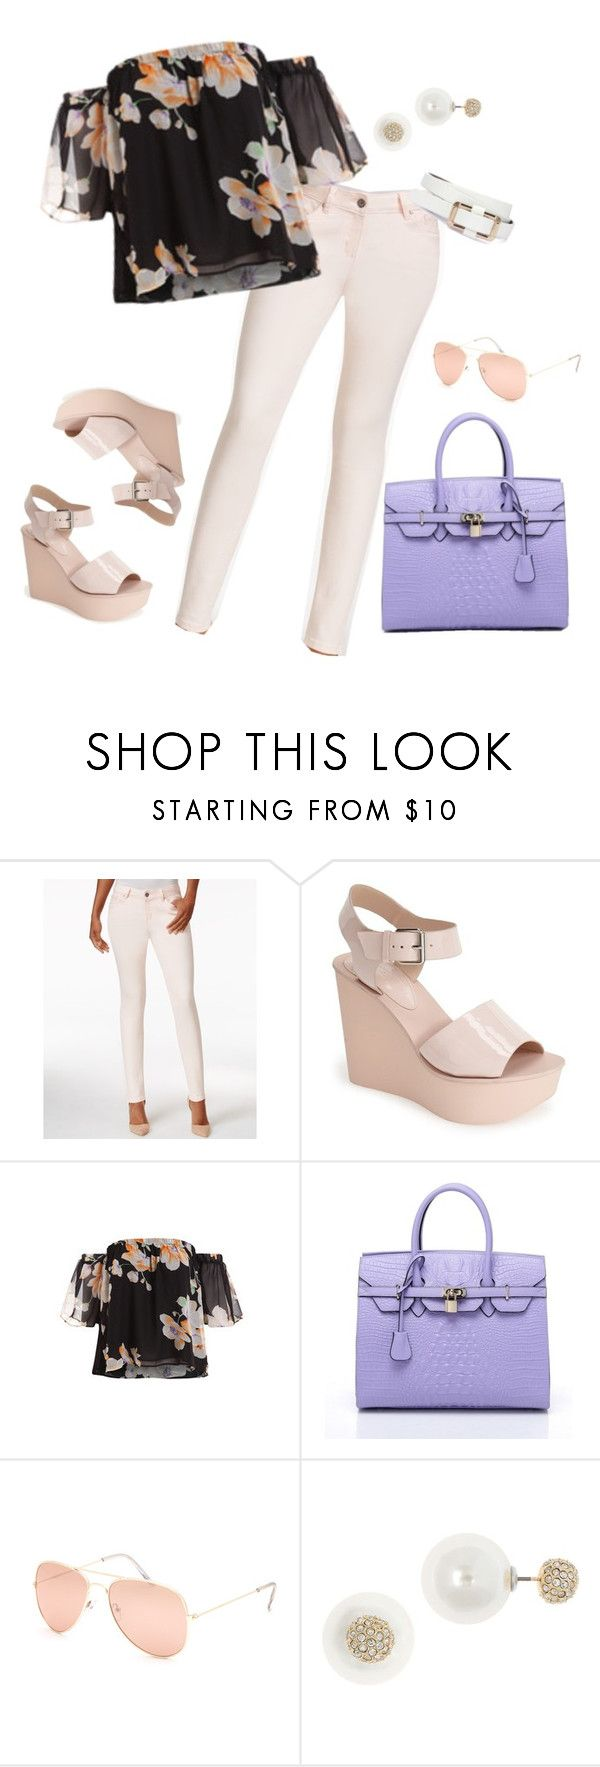 """Hola Senorita!"" by styl-i-sique ❤ liked on Polyvore featuring Earl Jean, Topshop, Full Tilt and Anne Klein"